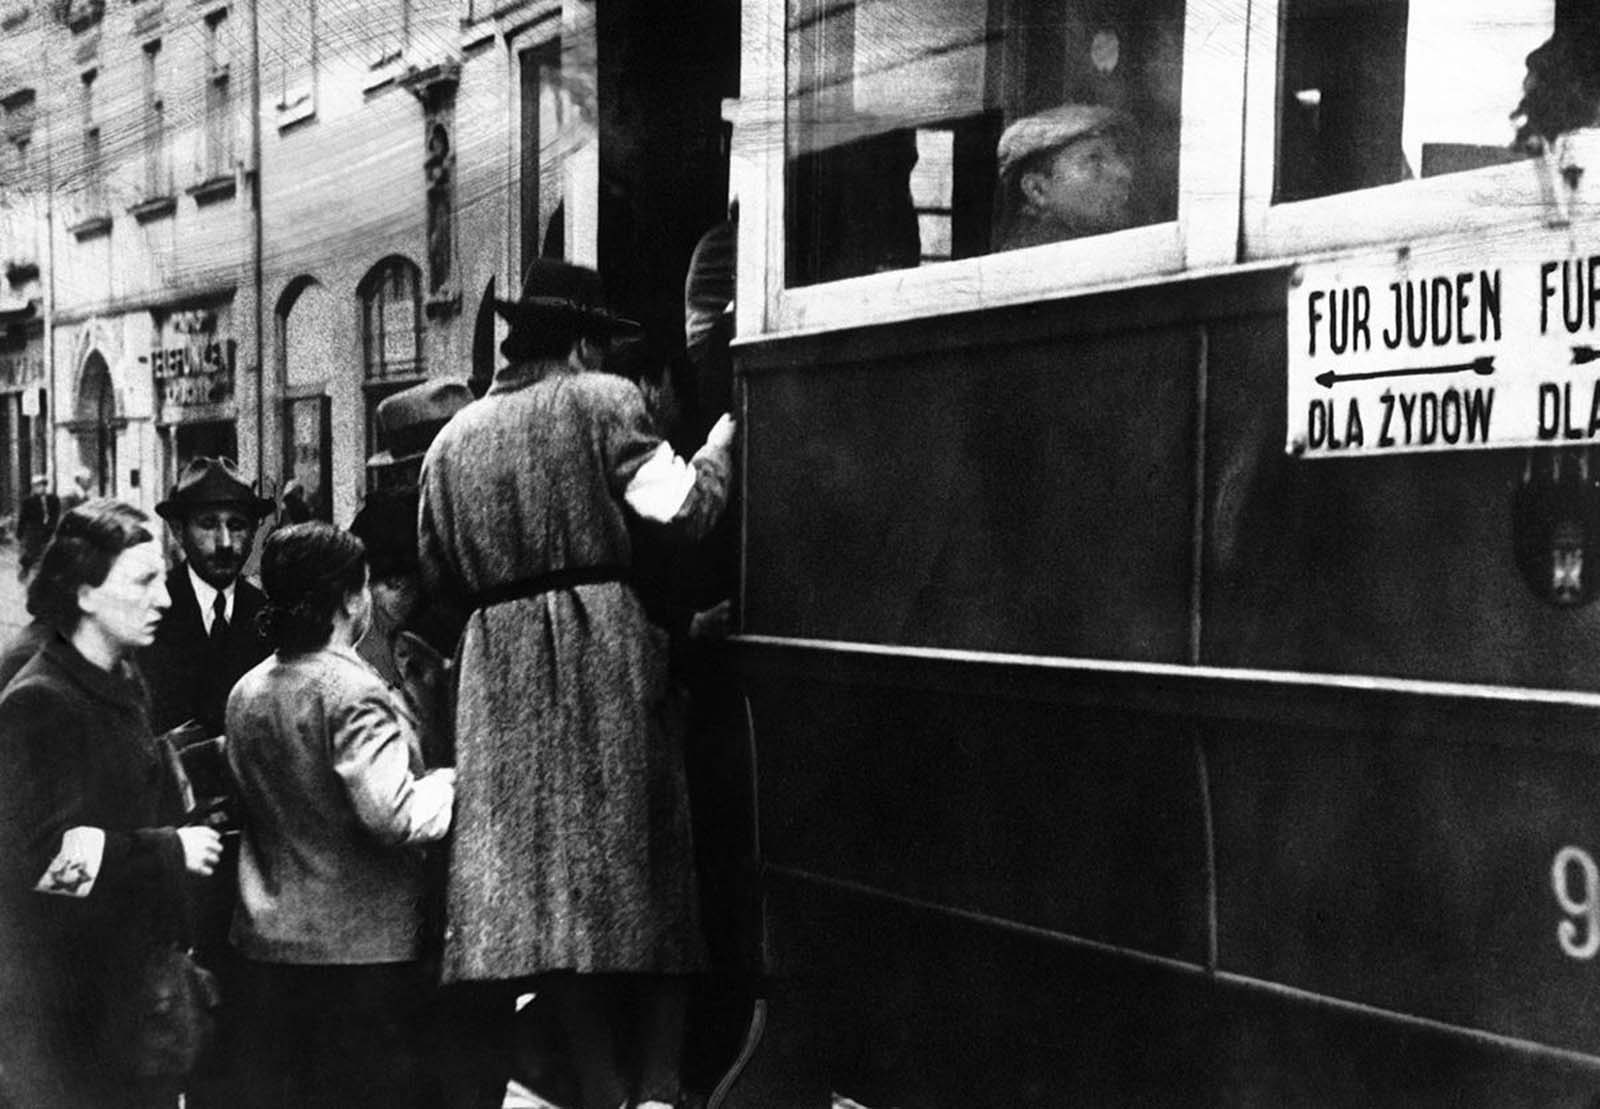 A scene from the Warsaw Ghetto where Jews are seen wearing white armlets bearing the Star of David and trams are seen marked with the words